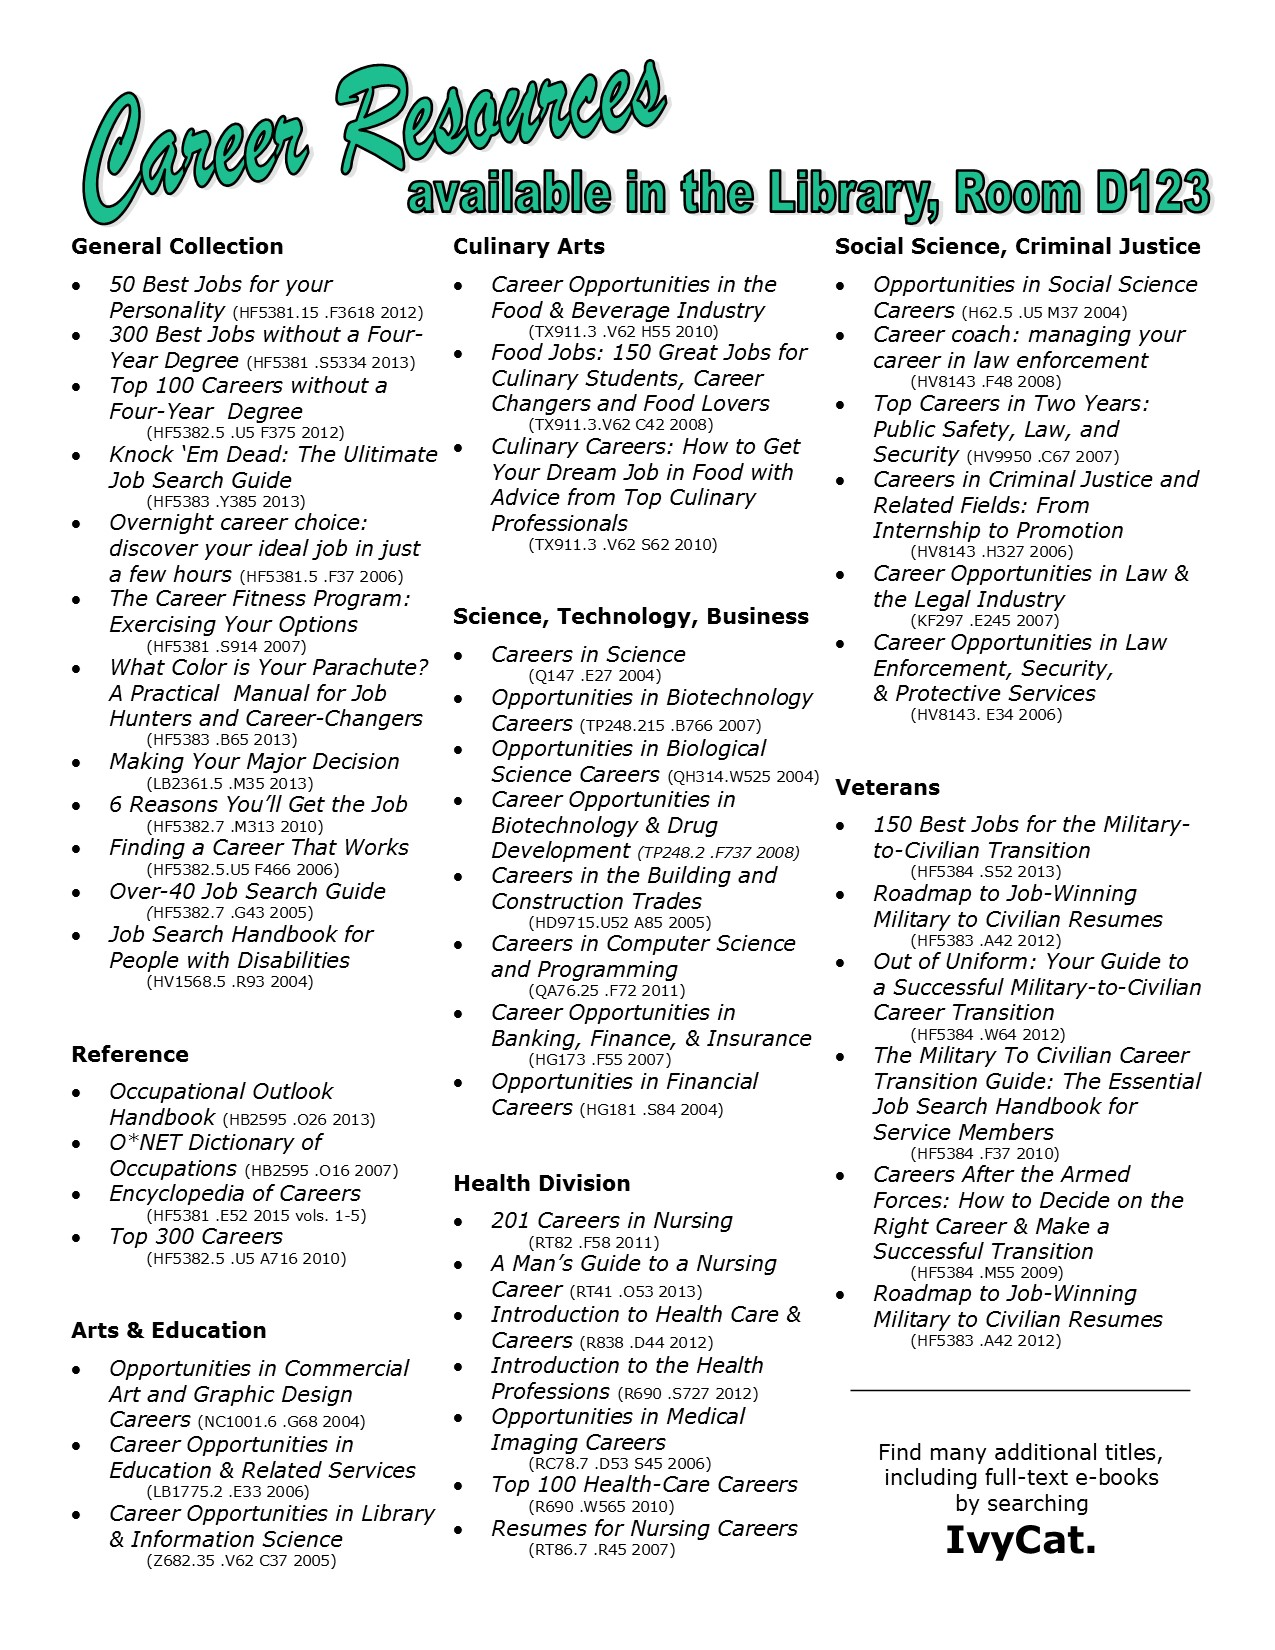 List of career resources available in the library, room D123